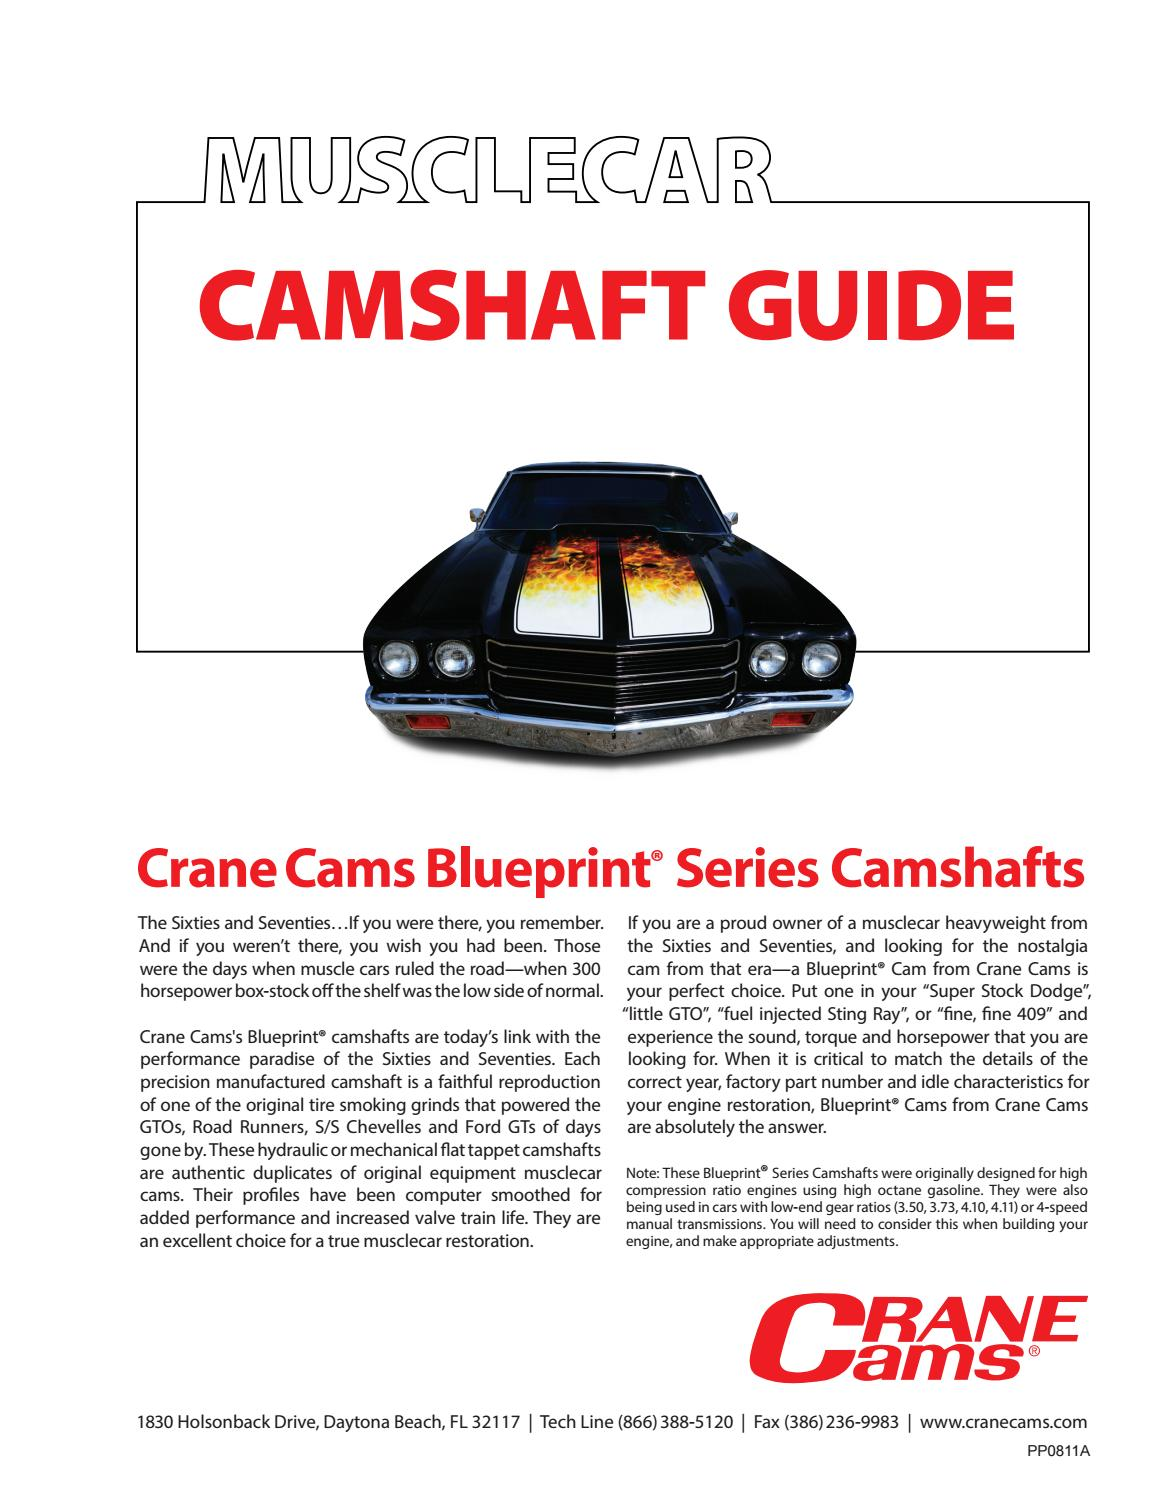 Crane Cams Muscle Car Camshaft Guide by Crane Cams - issuu